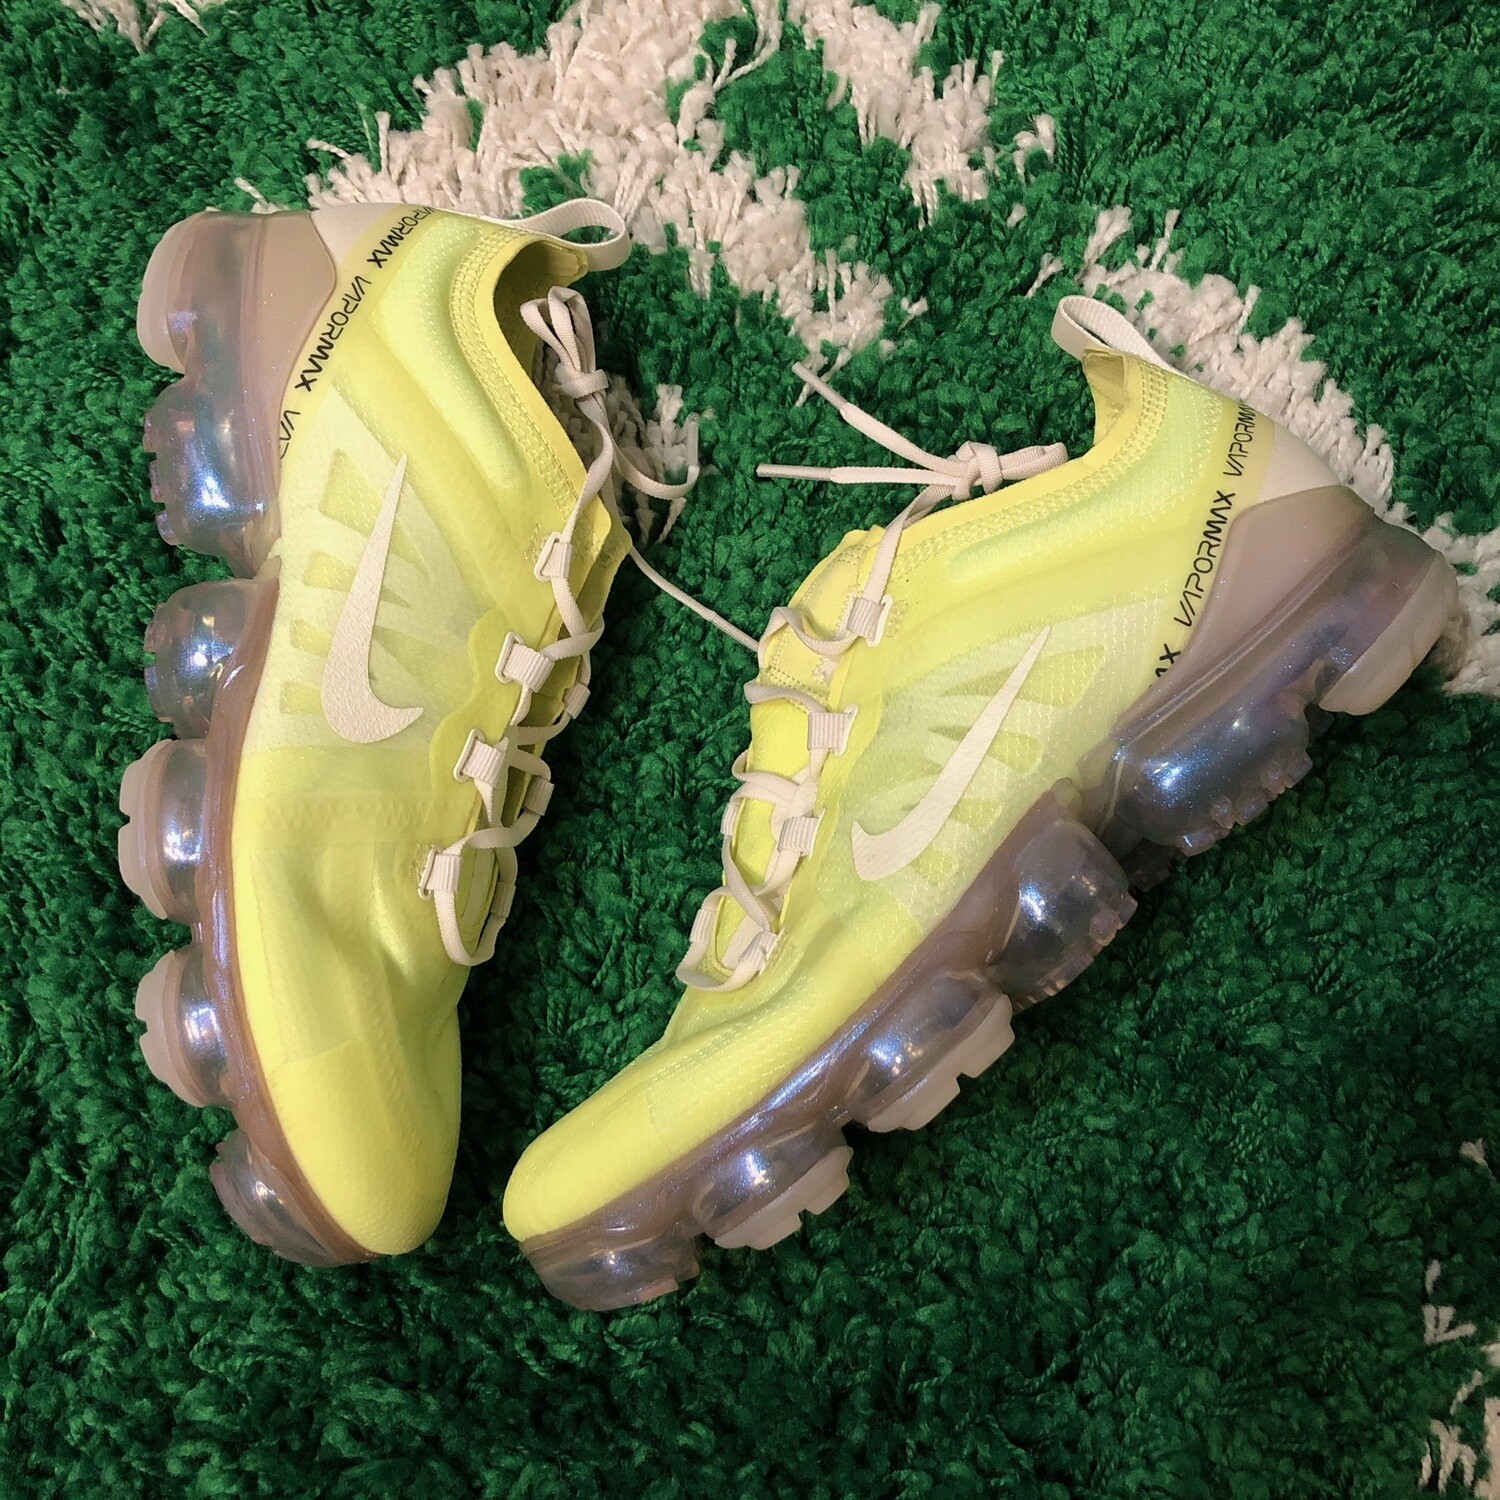 Nike Vapour Max Green Size 8.5W